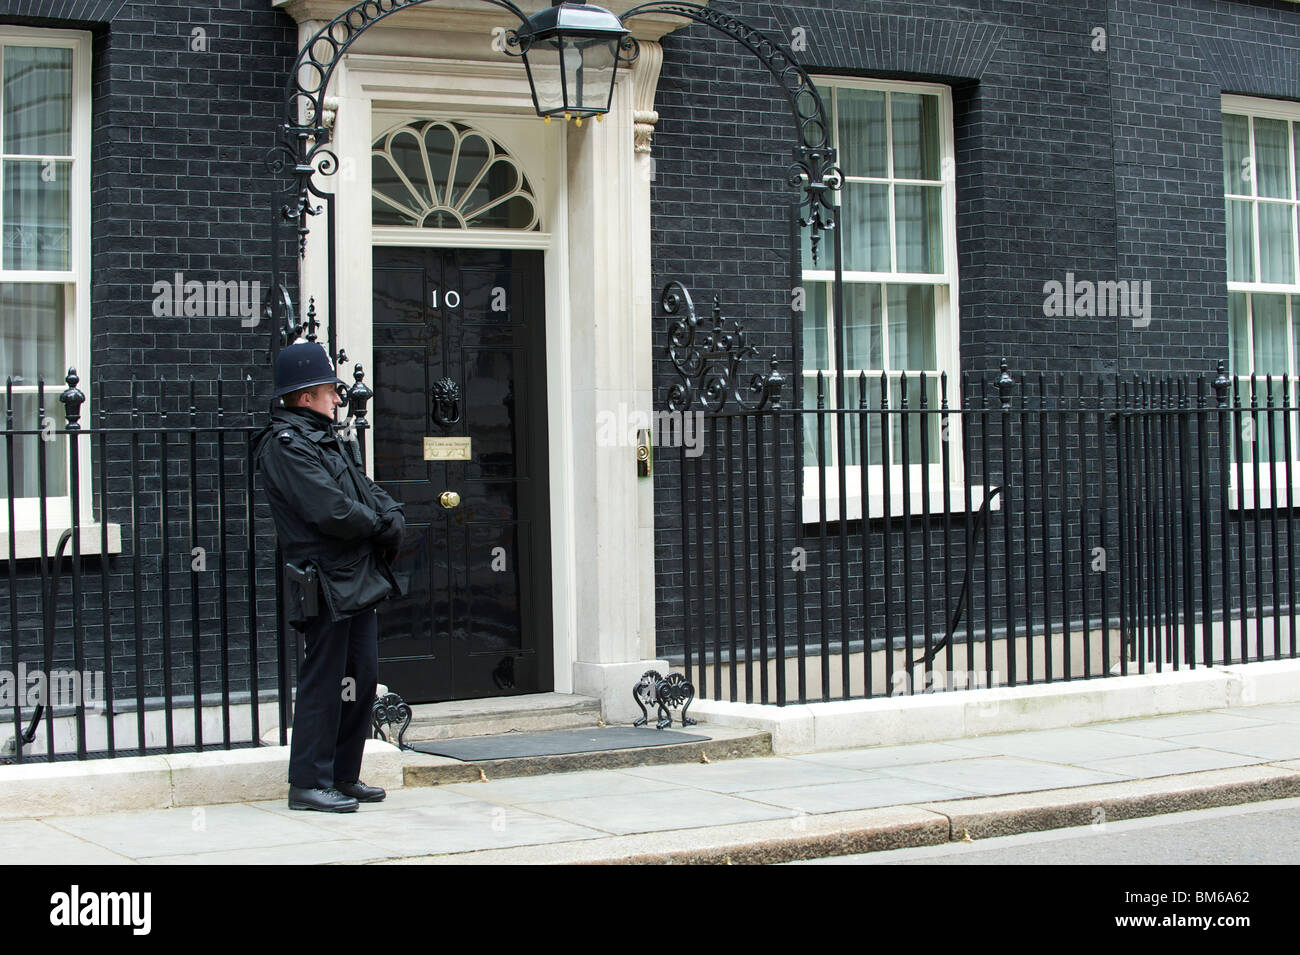 10 downing street with london bobby stock photo 29643210 alamy. Black Bedroom Furniture Sets. Home Design Ideas